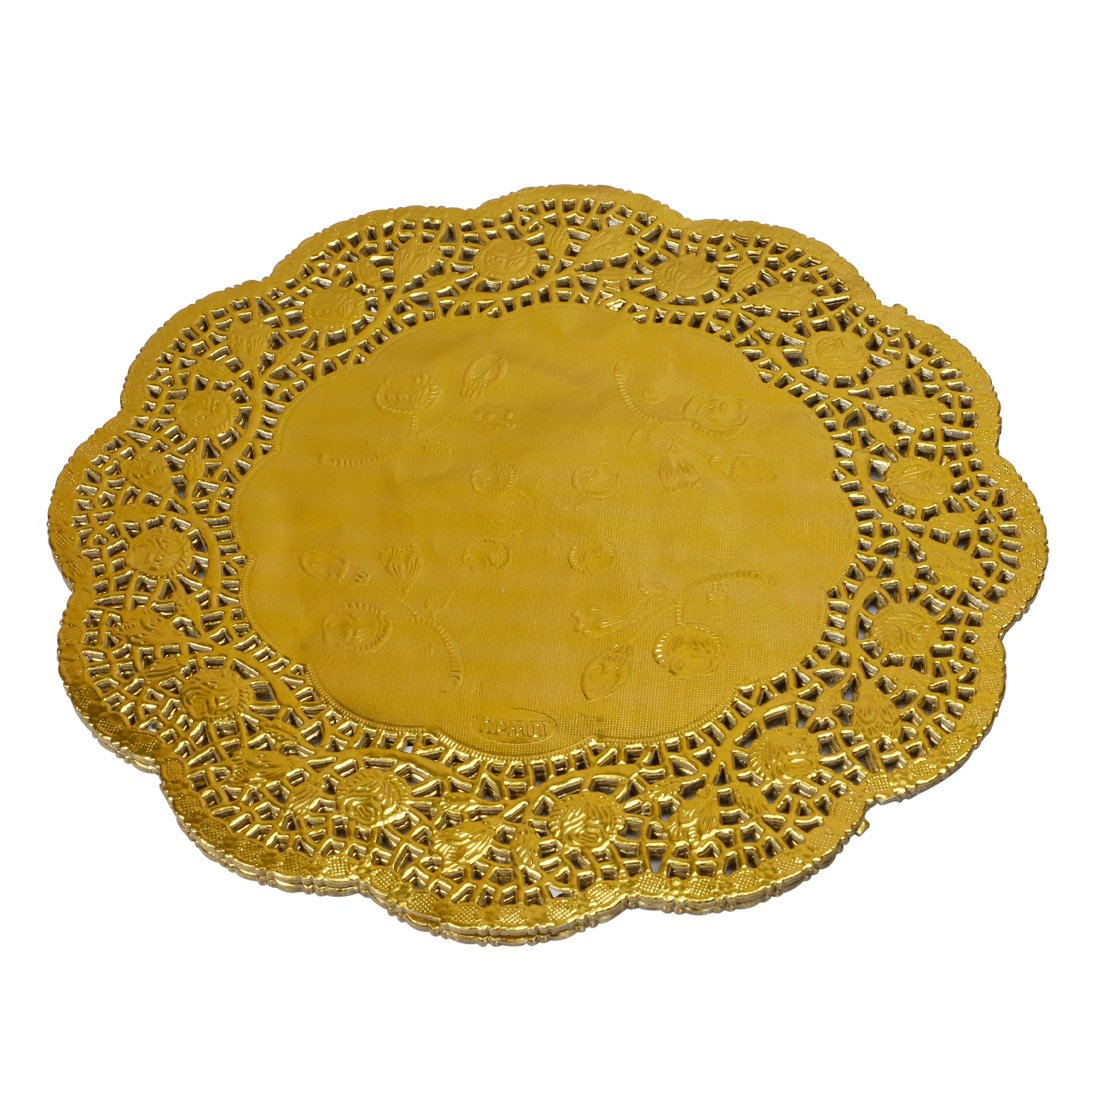 Geeklife Round Lace Paper Doilies, Gold Foil Doilies, Disposable Paper Doilies, 10.5 Inches, 60 Pcs